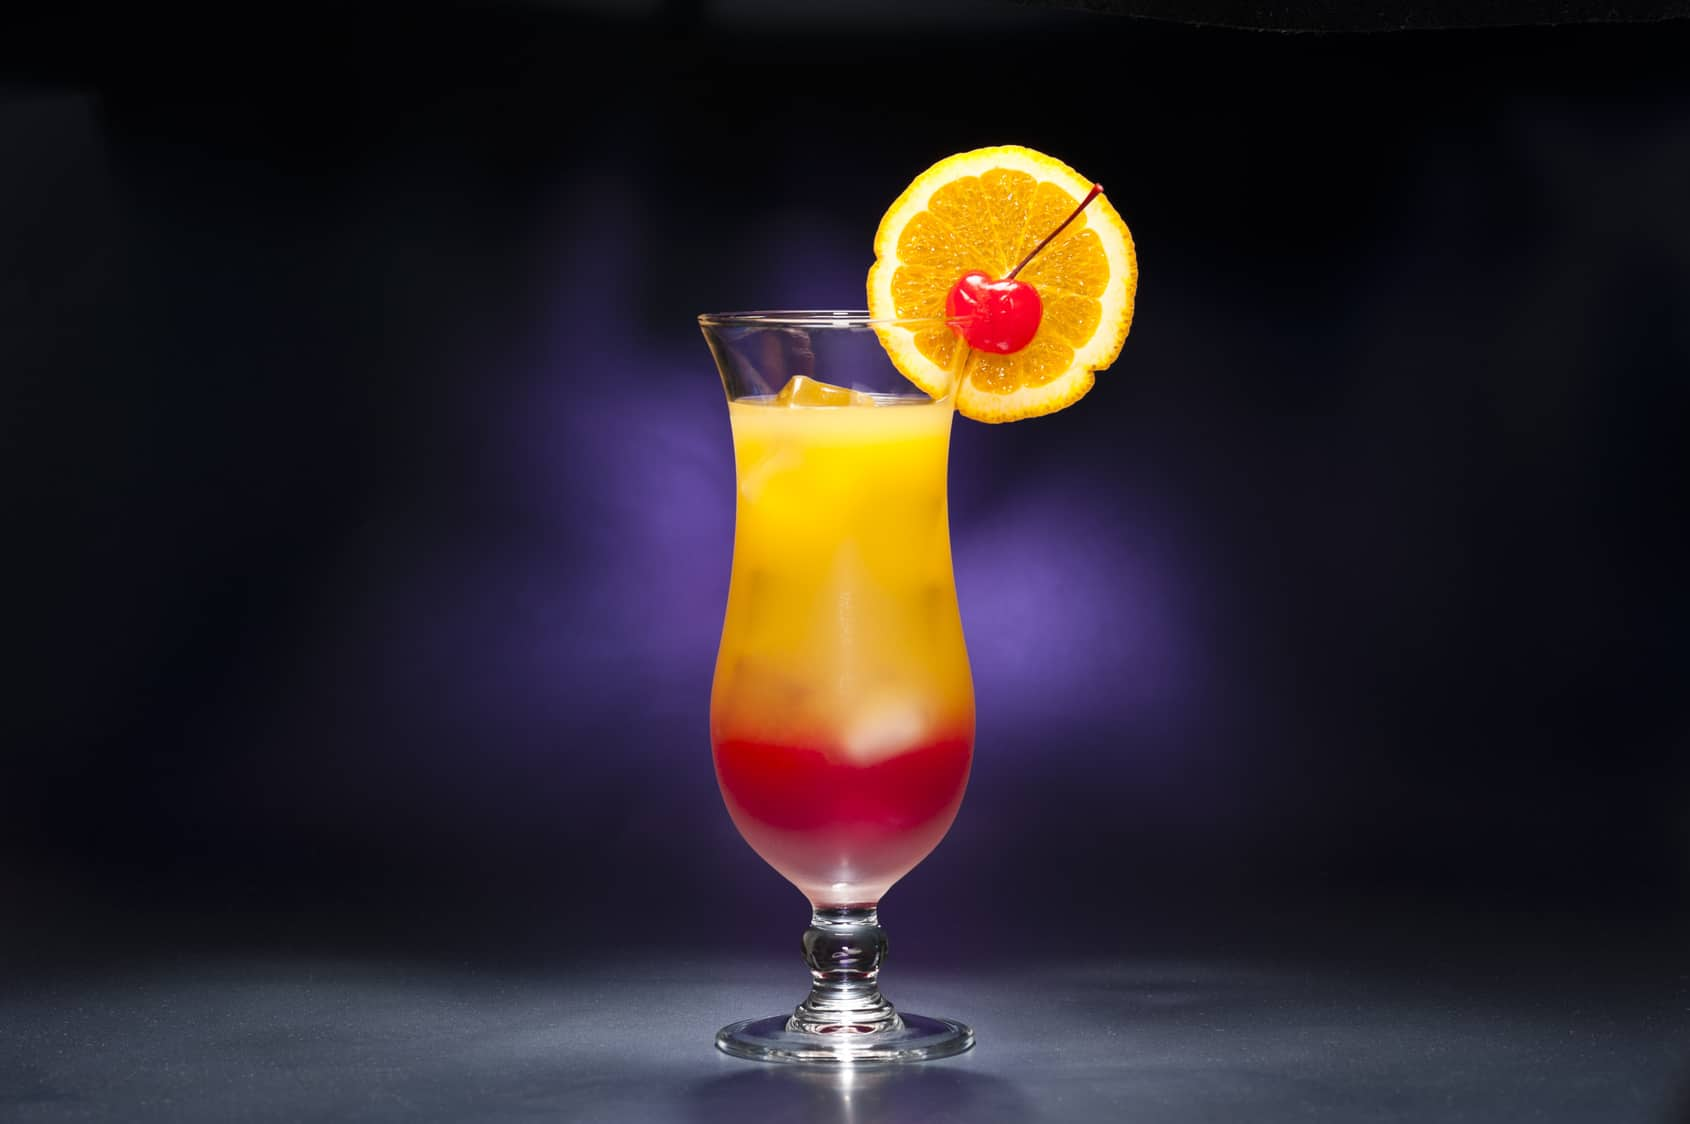 Tequila sunrise das echte rezepte f r den tequila cocktail for Best tequila for tequila sunrise